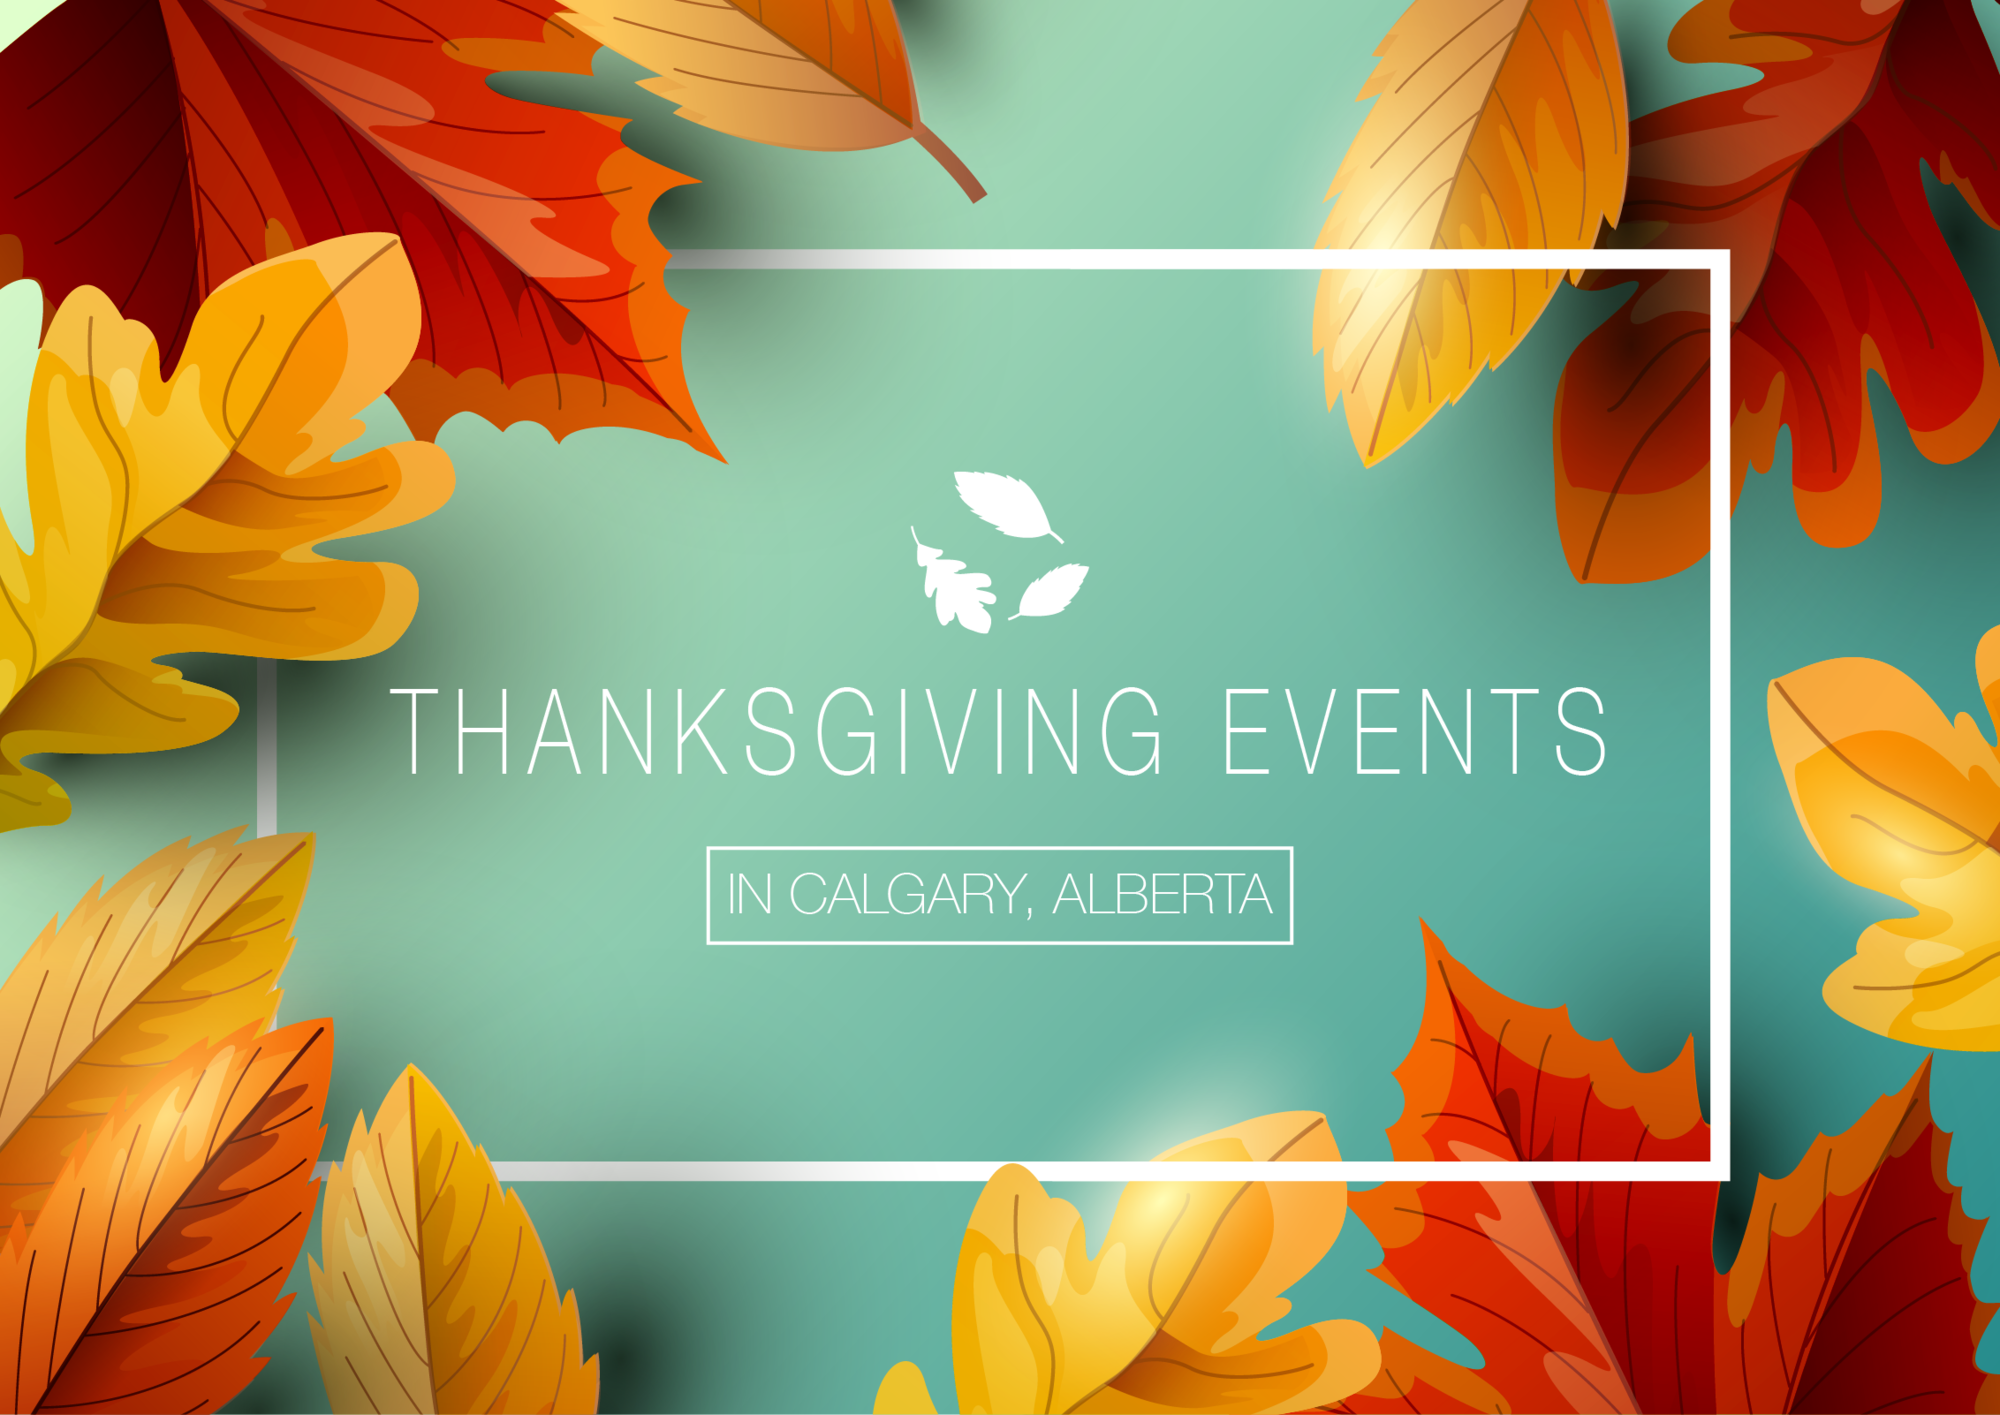 Thanksgiving Holiday Celebrations in Calgary